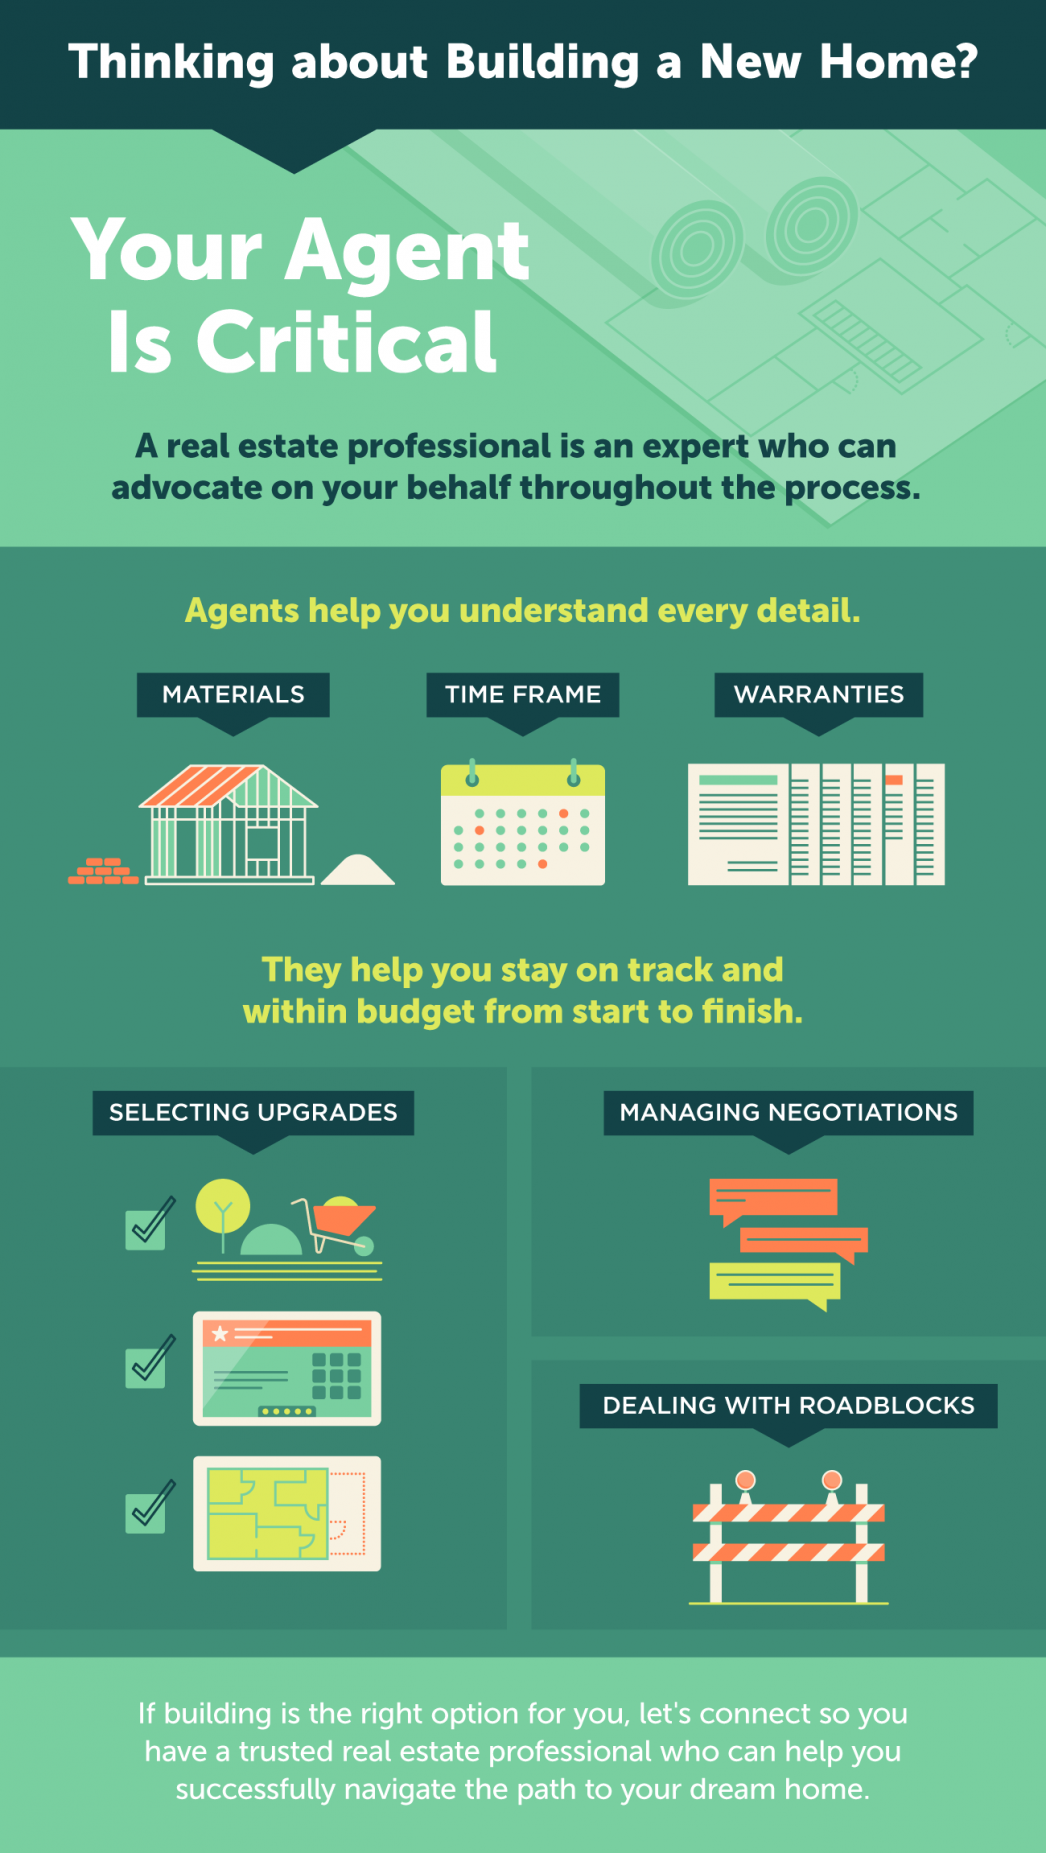 Thinking about Building a New Home? Your Agent Is Critical. [INFOGRAPHIC] | MyKCM